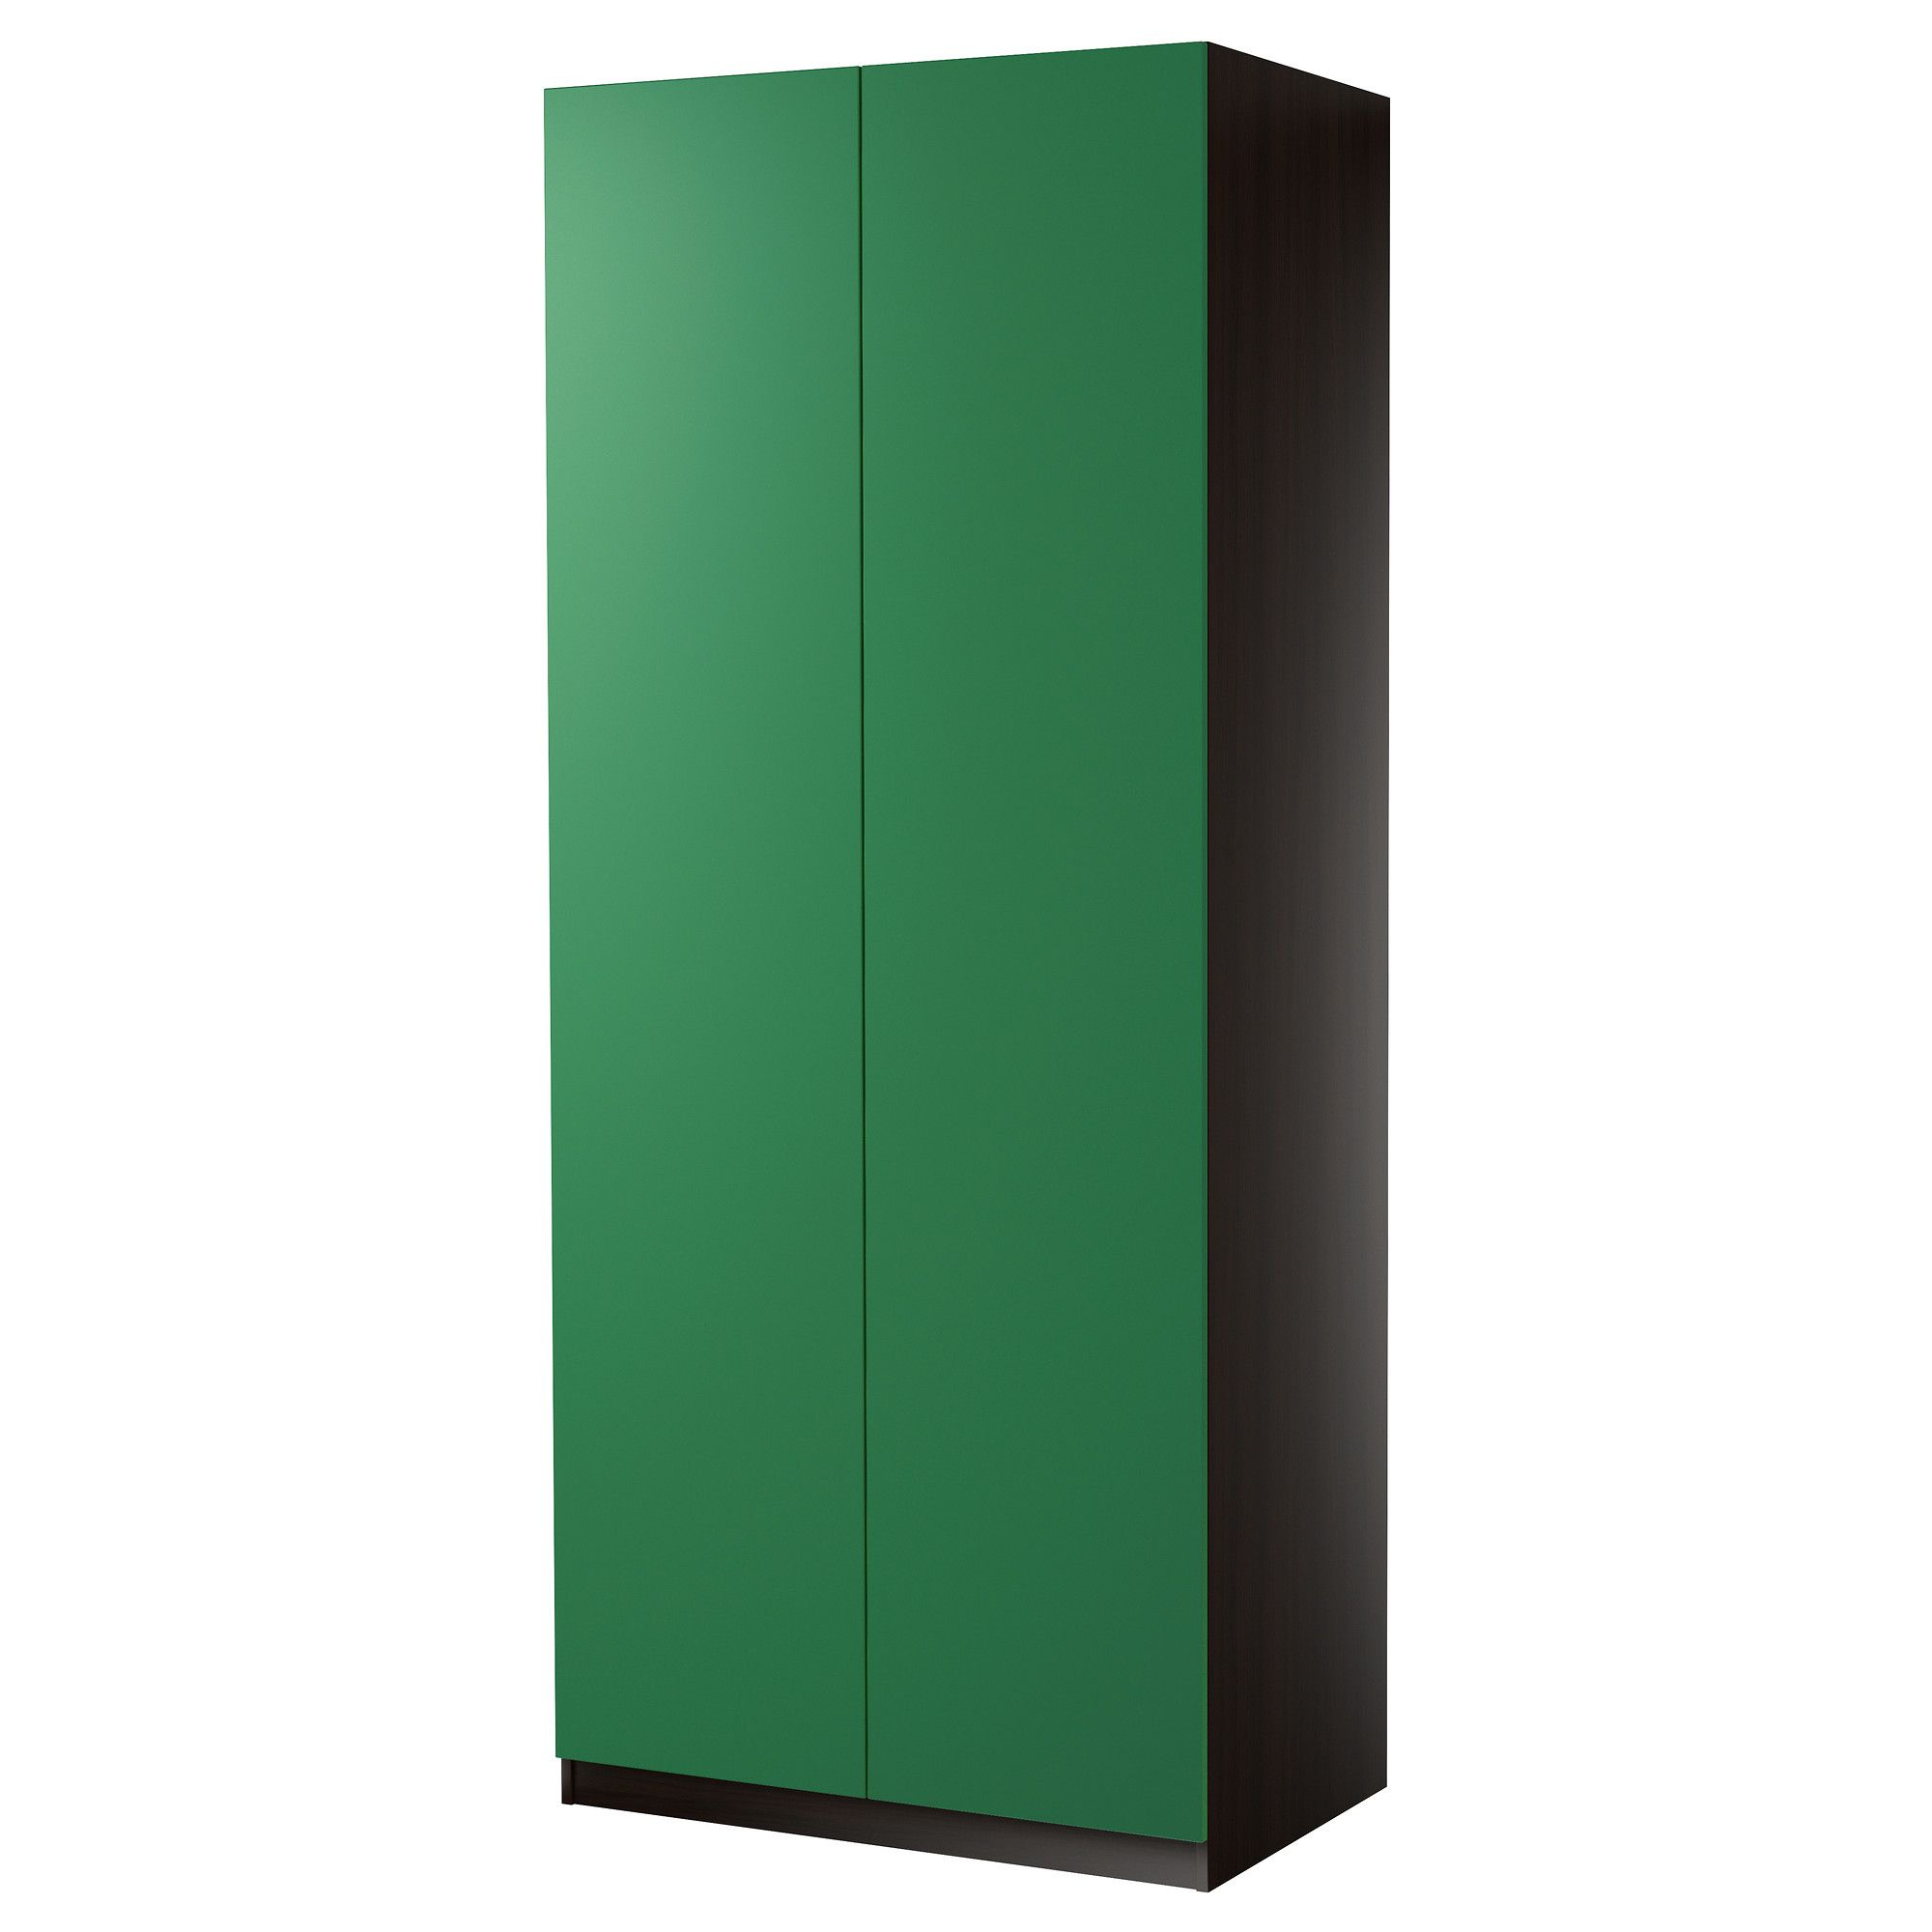 pax schrank mit 2 t ren tanem gr n schwarzbraun 100x38x201 cm scharnier ikea green. Black Bedroom Furniture Sets. Home Design Ideas